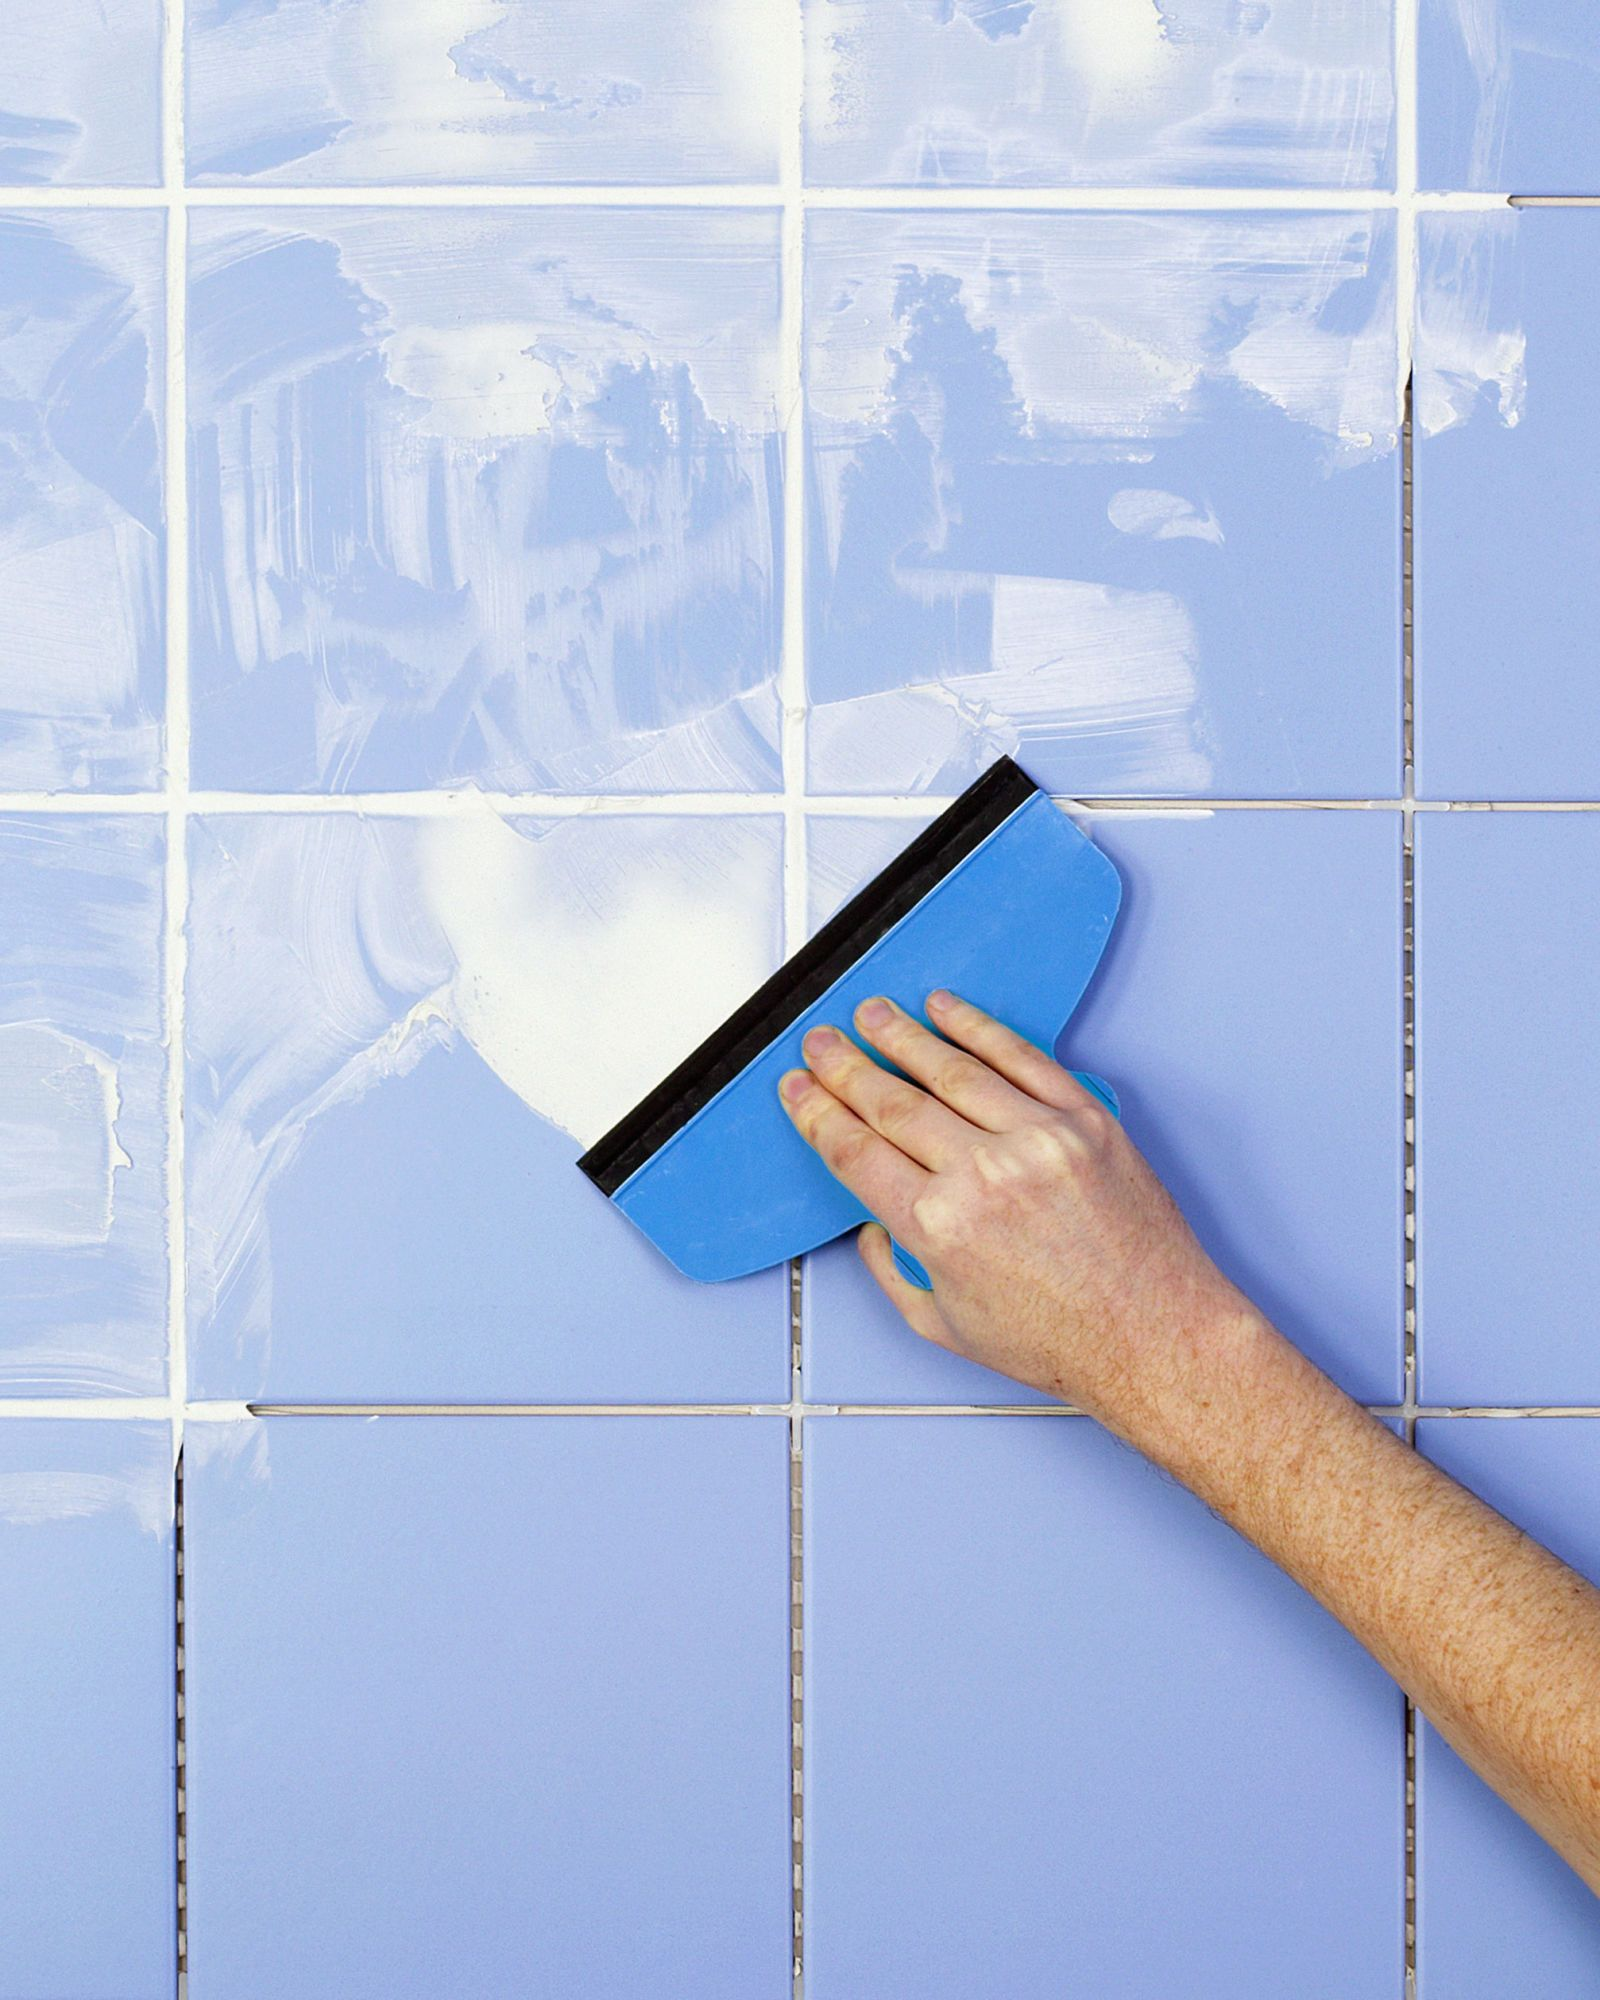 Affordable Get A Commercial Grout Haze Remover Grout Or Caulk Removerfrom Home How To Fix M Dab A Drop Grout Haze Remover Insmall Areas Reno Mistakes Everybody Makes houzz-02 Grout Haze Remover